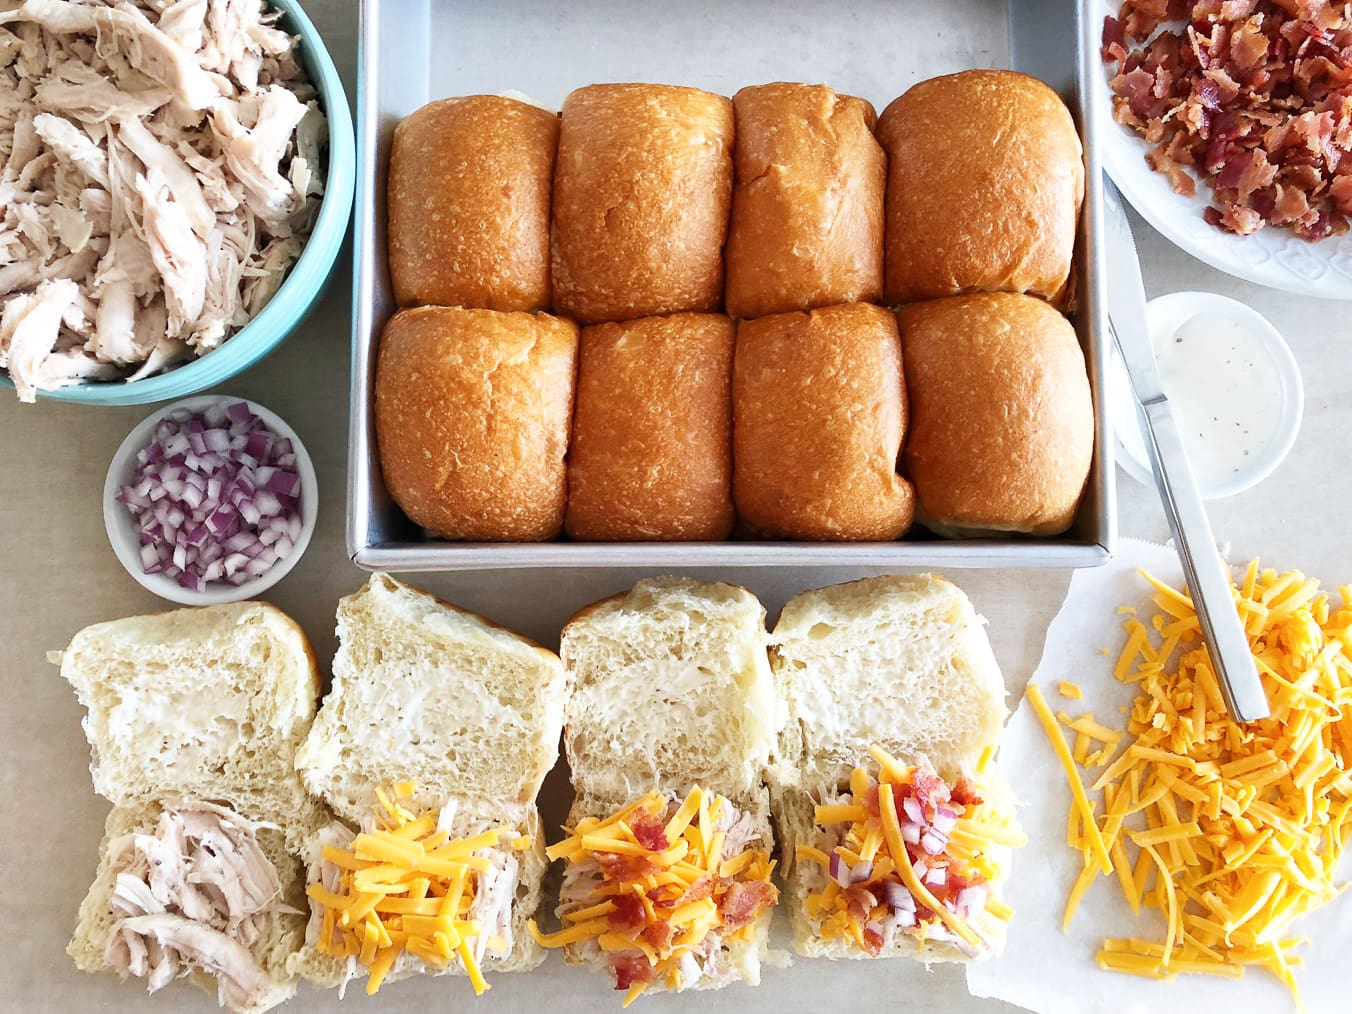 Simple Ways to Stretch Your Meals: Make a tray of baked sandwiches with last night's leftover meat